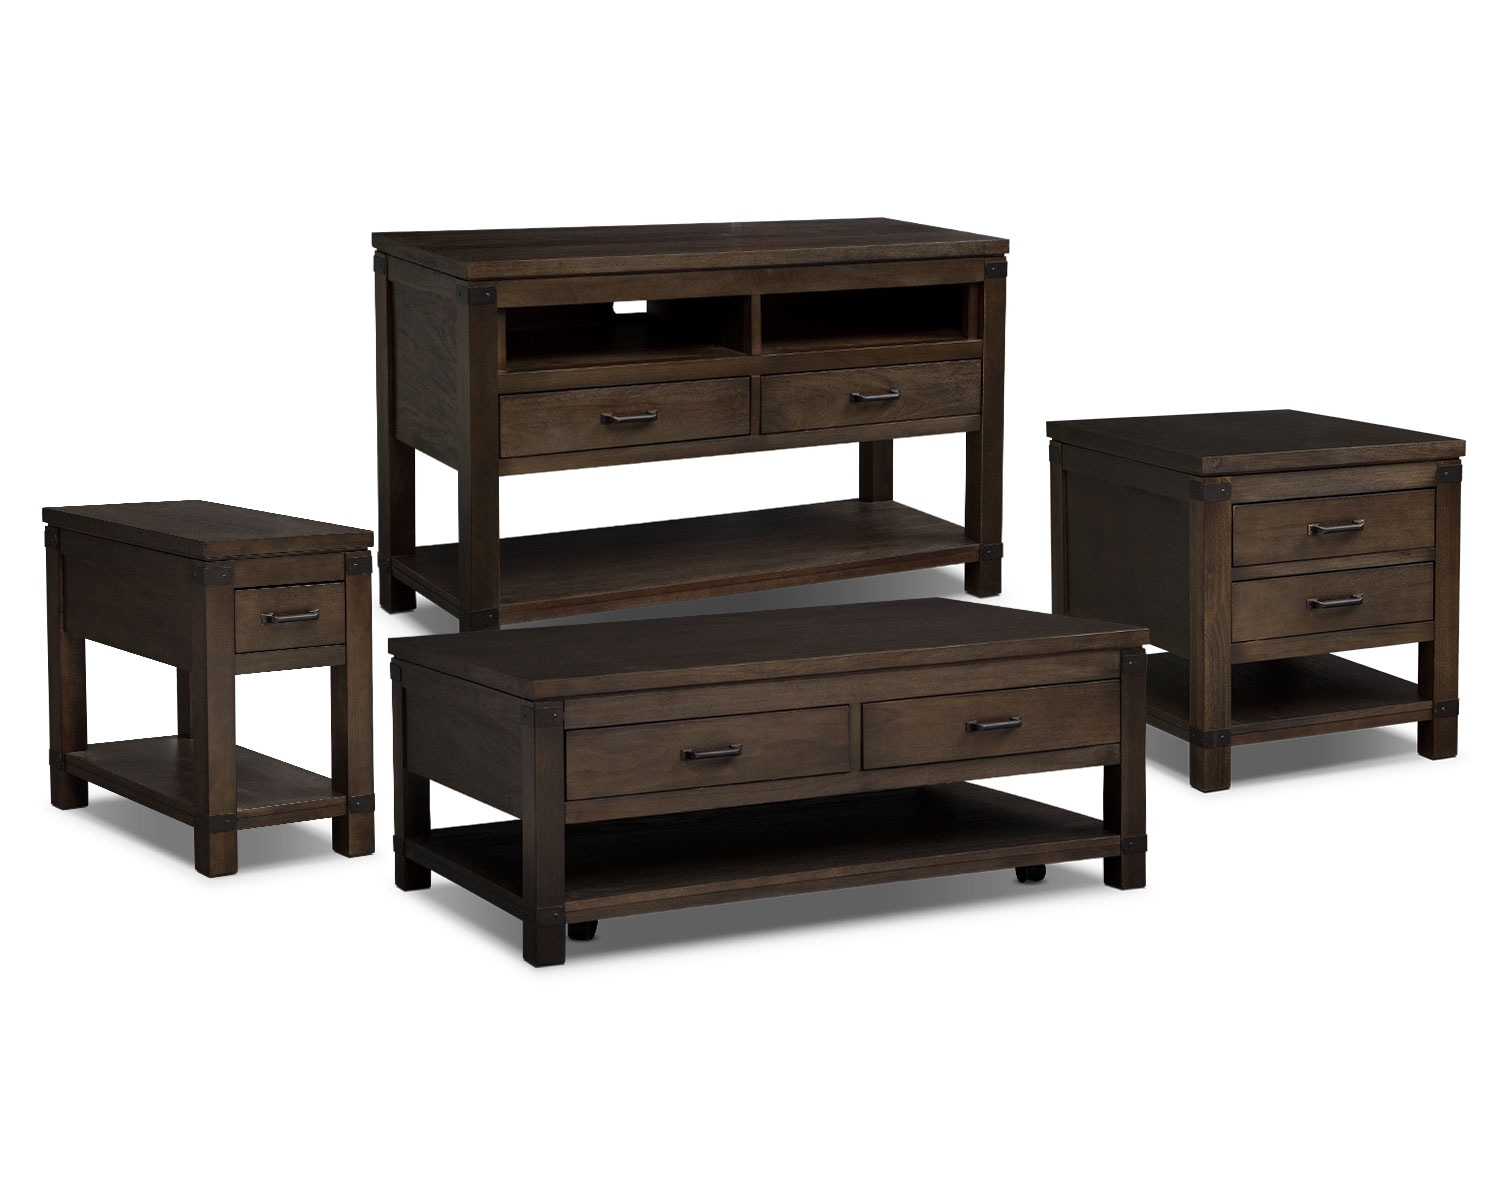 Best Selling Home Accents Decor Value City Furniture